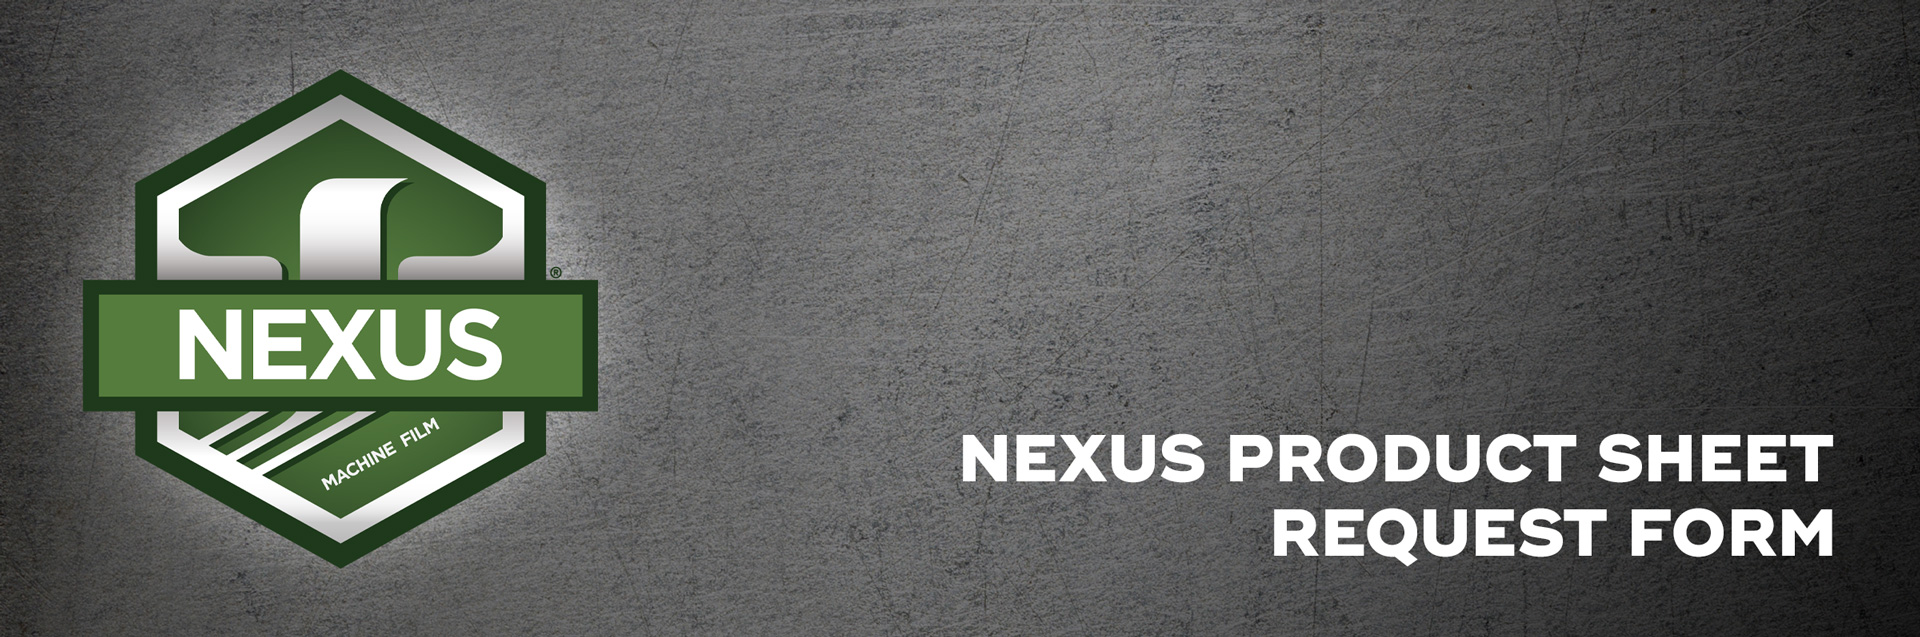 Nexus-Product-Sheet-Request-Form